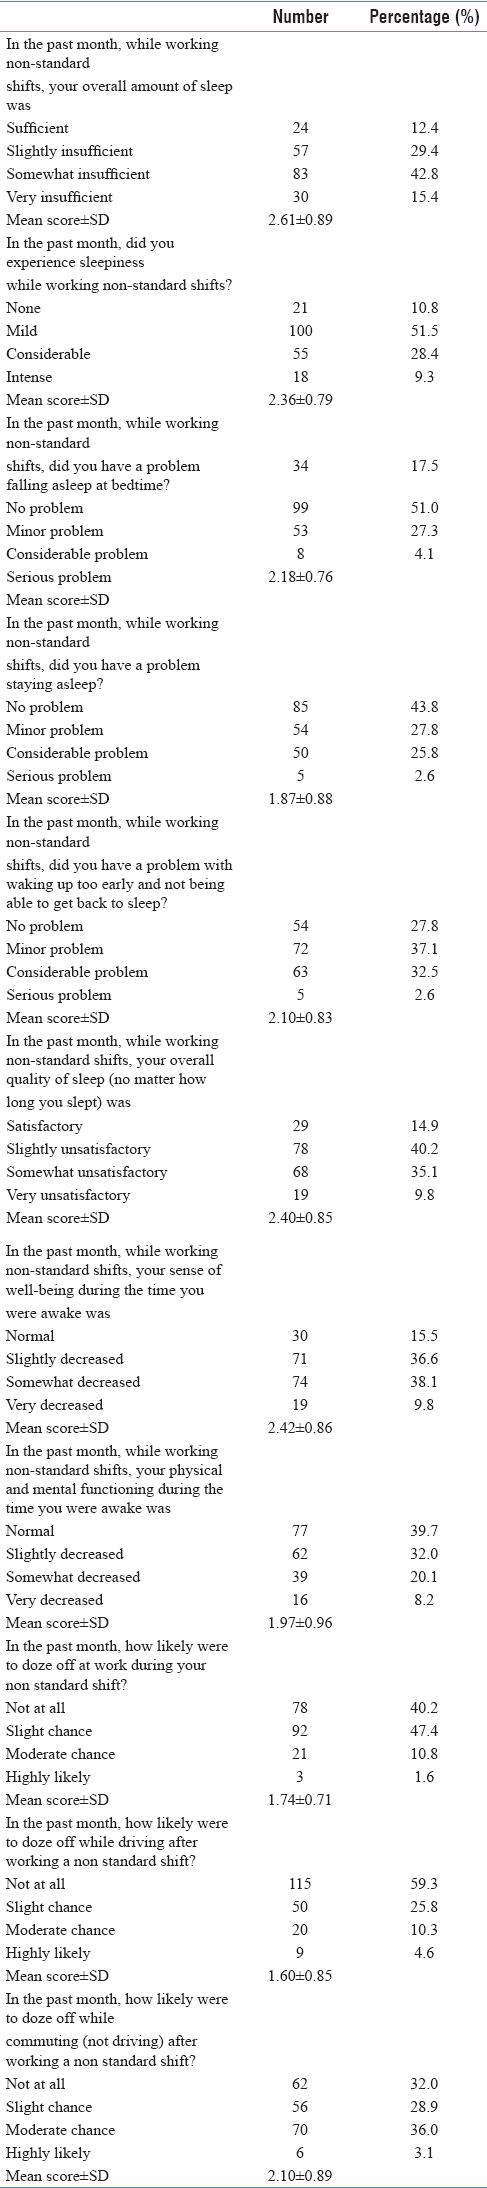 Table 2: Answers to the SWDSQ of participants working in non-standard shifts